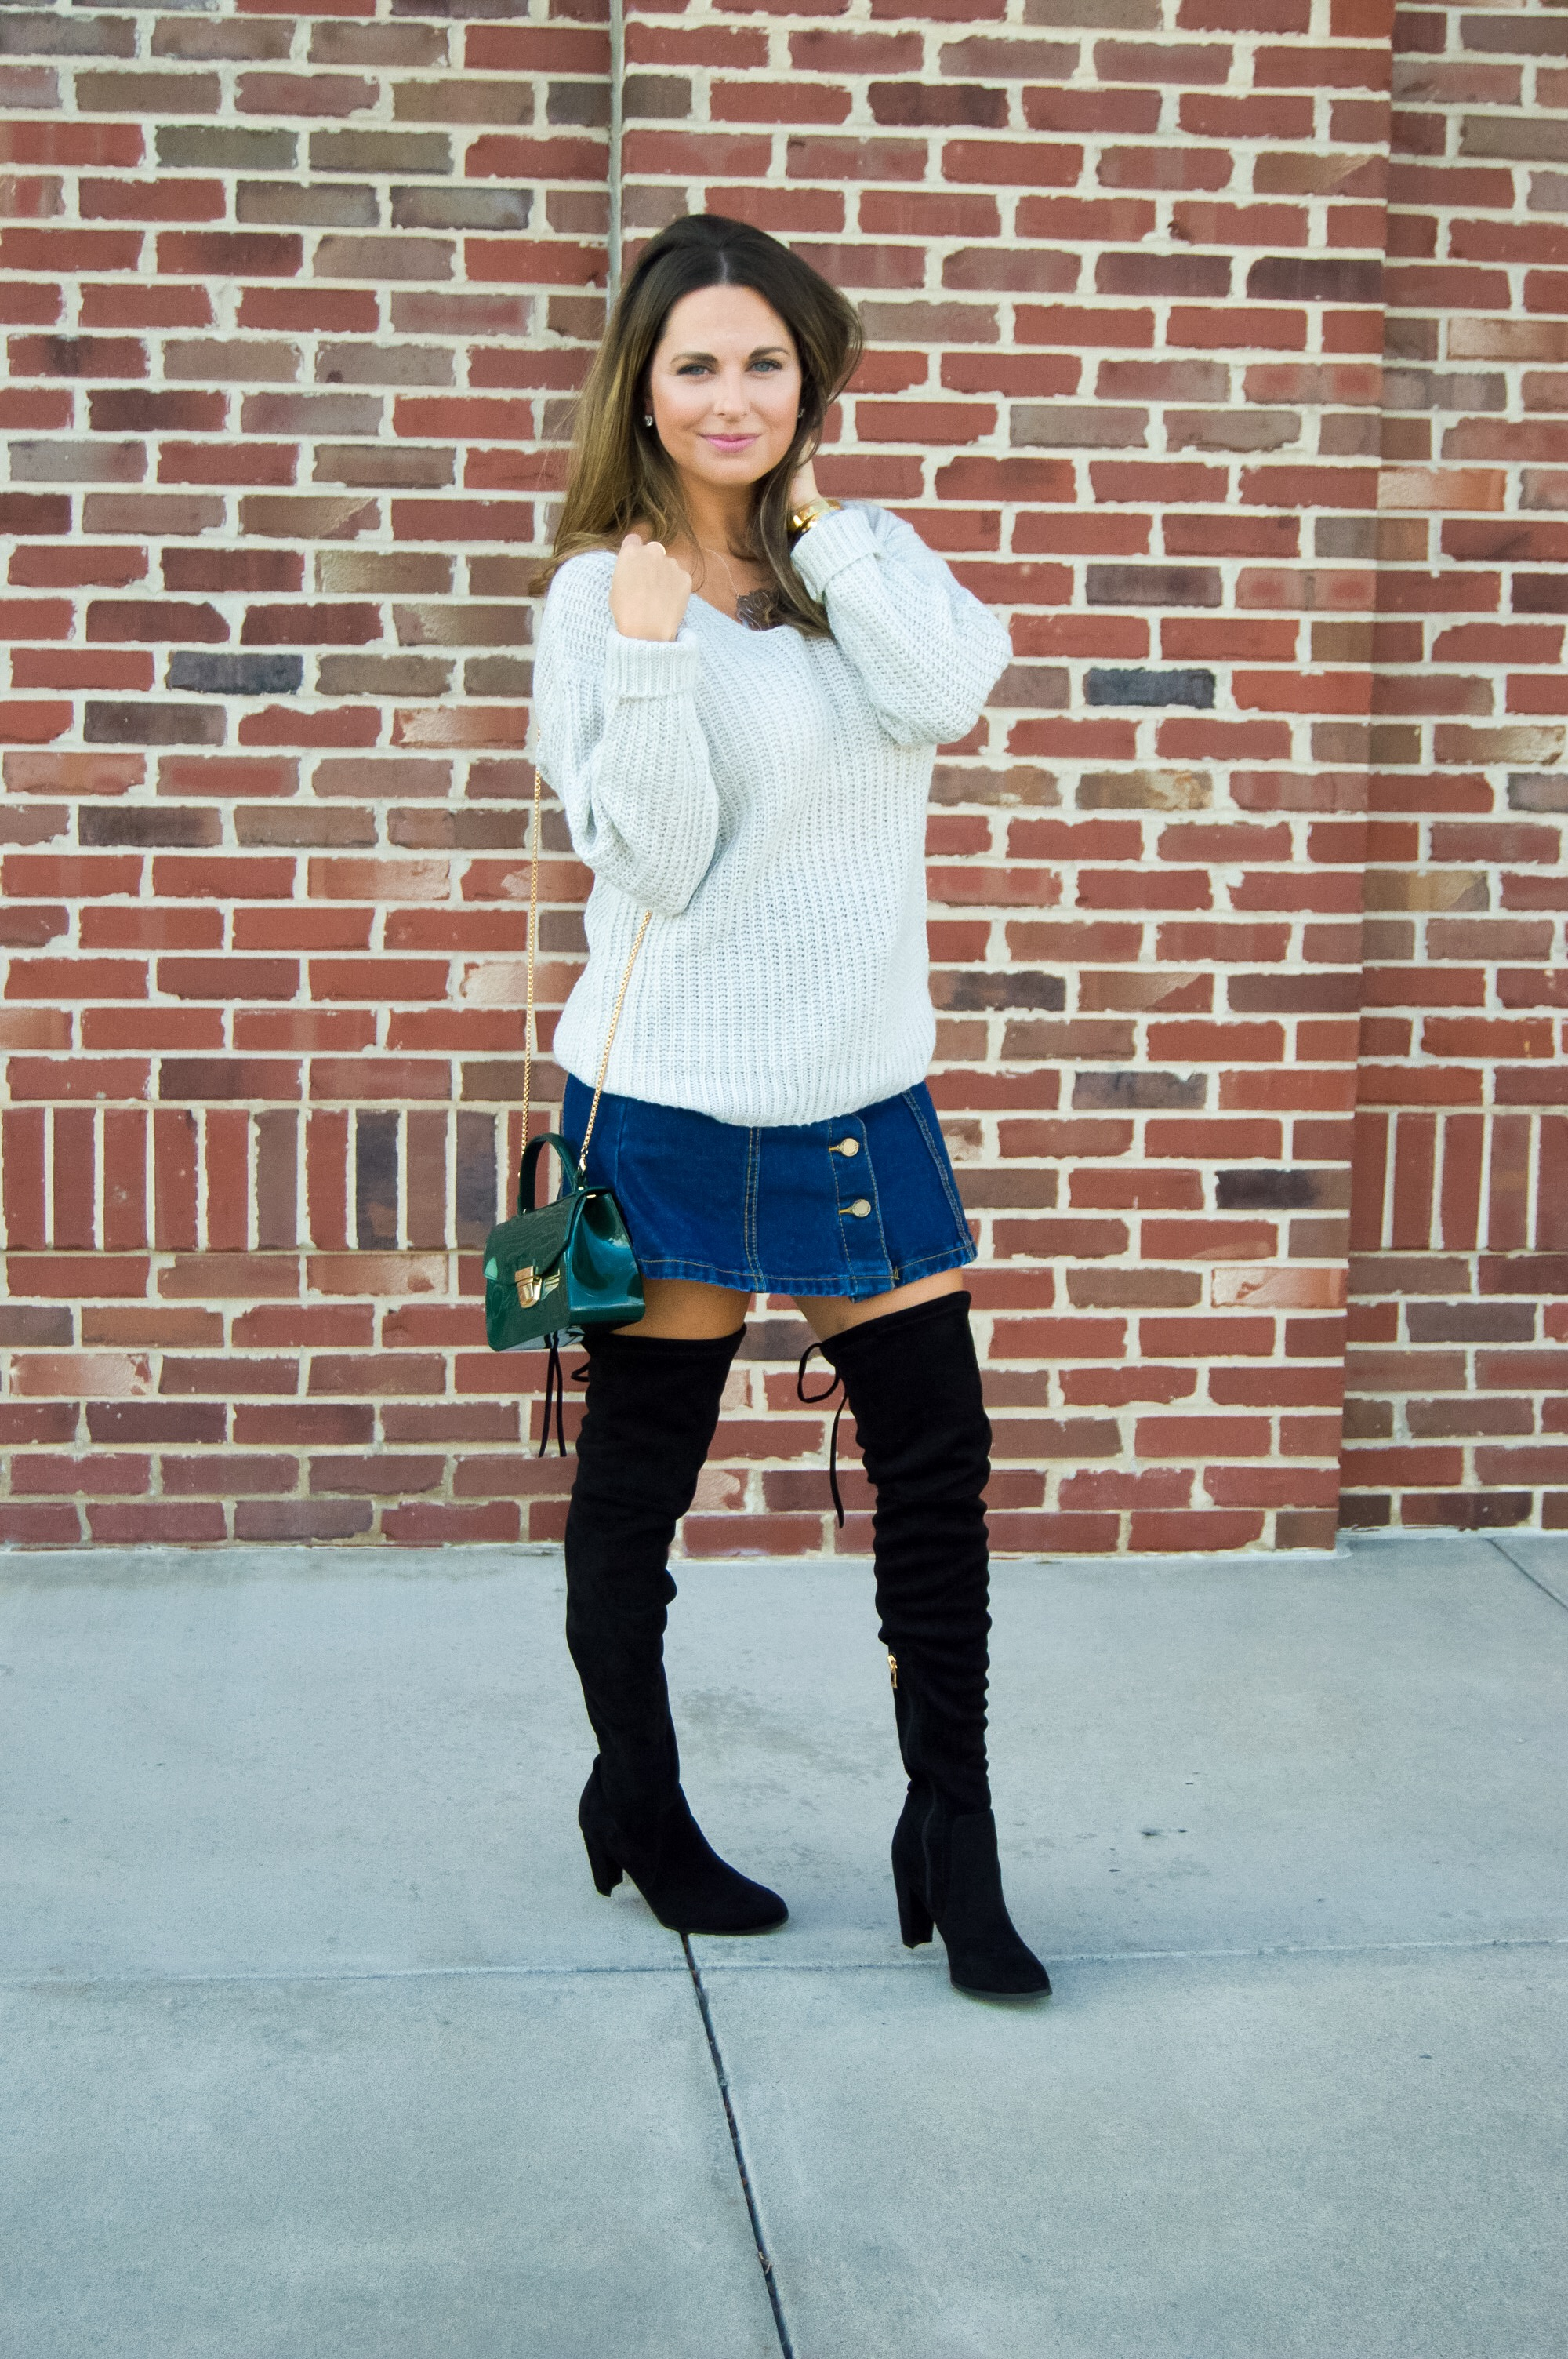 2019 year lifestyle- Mini denim skirt and boots